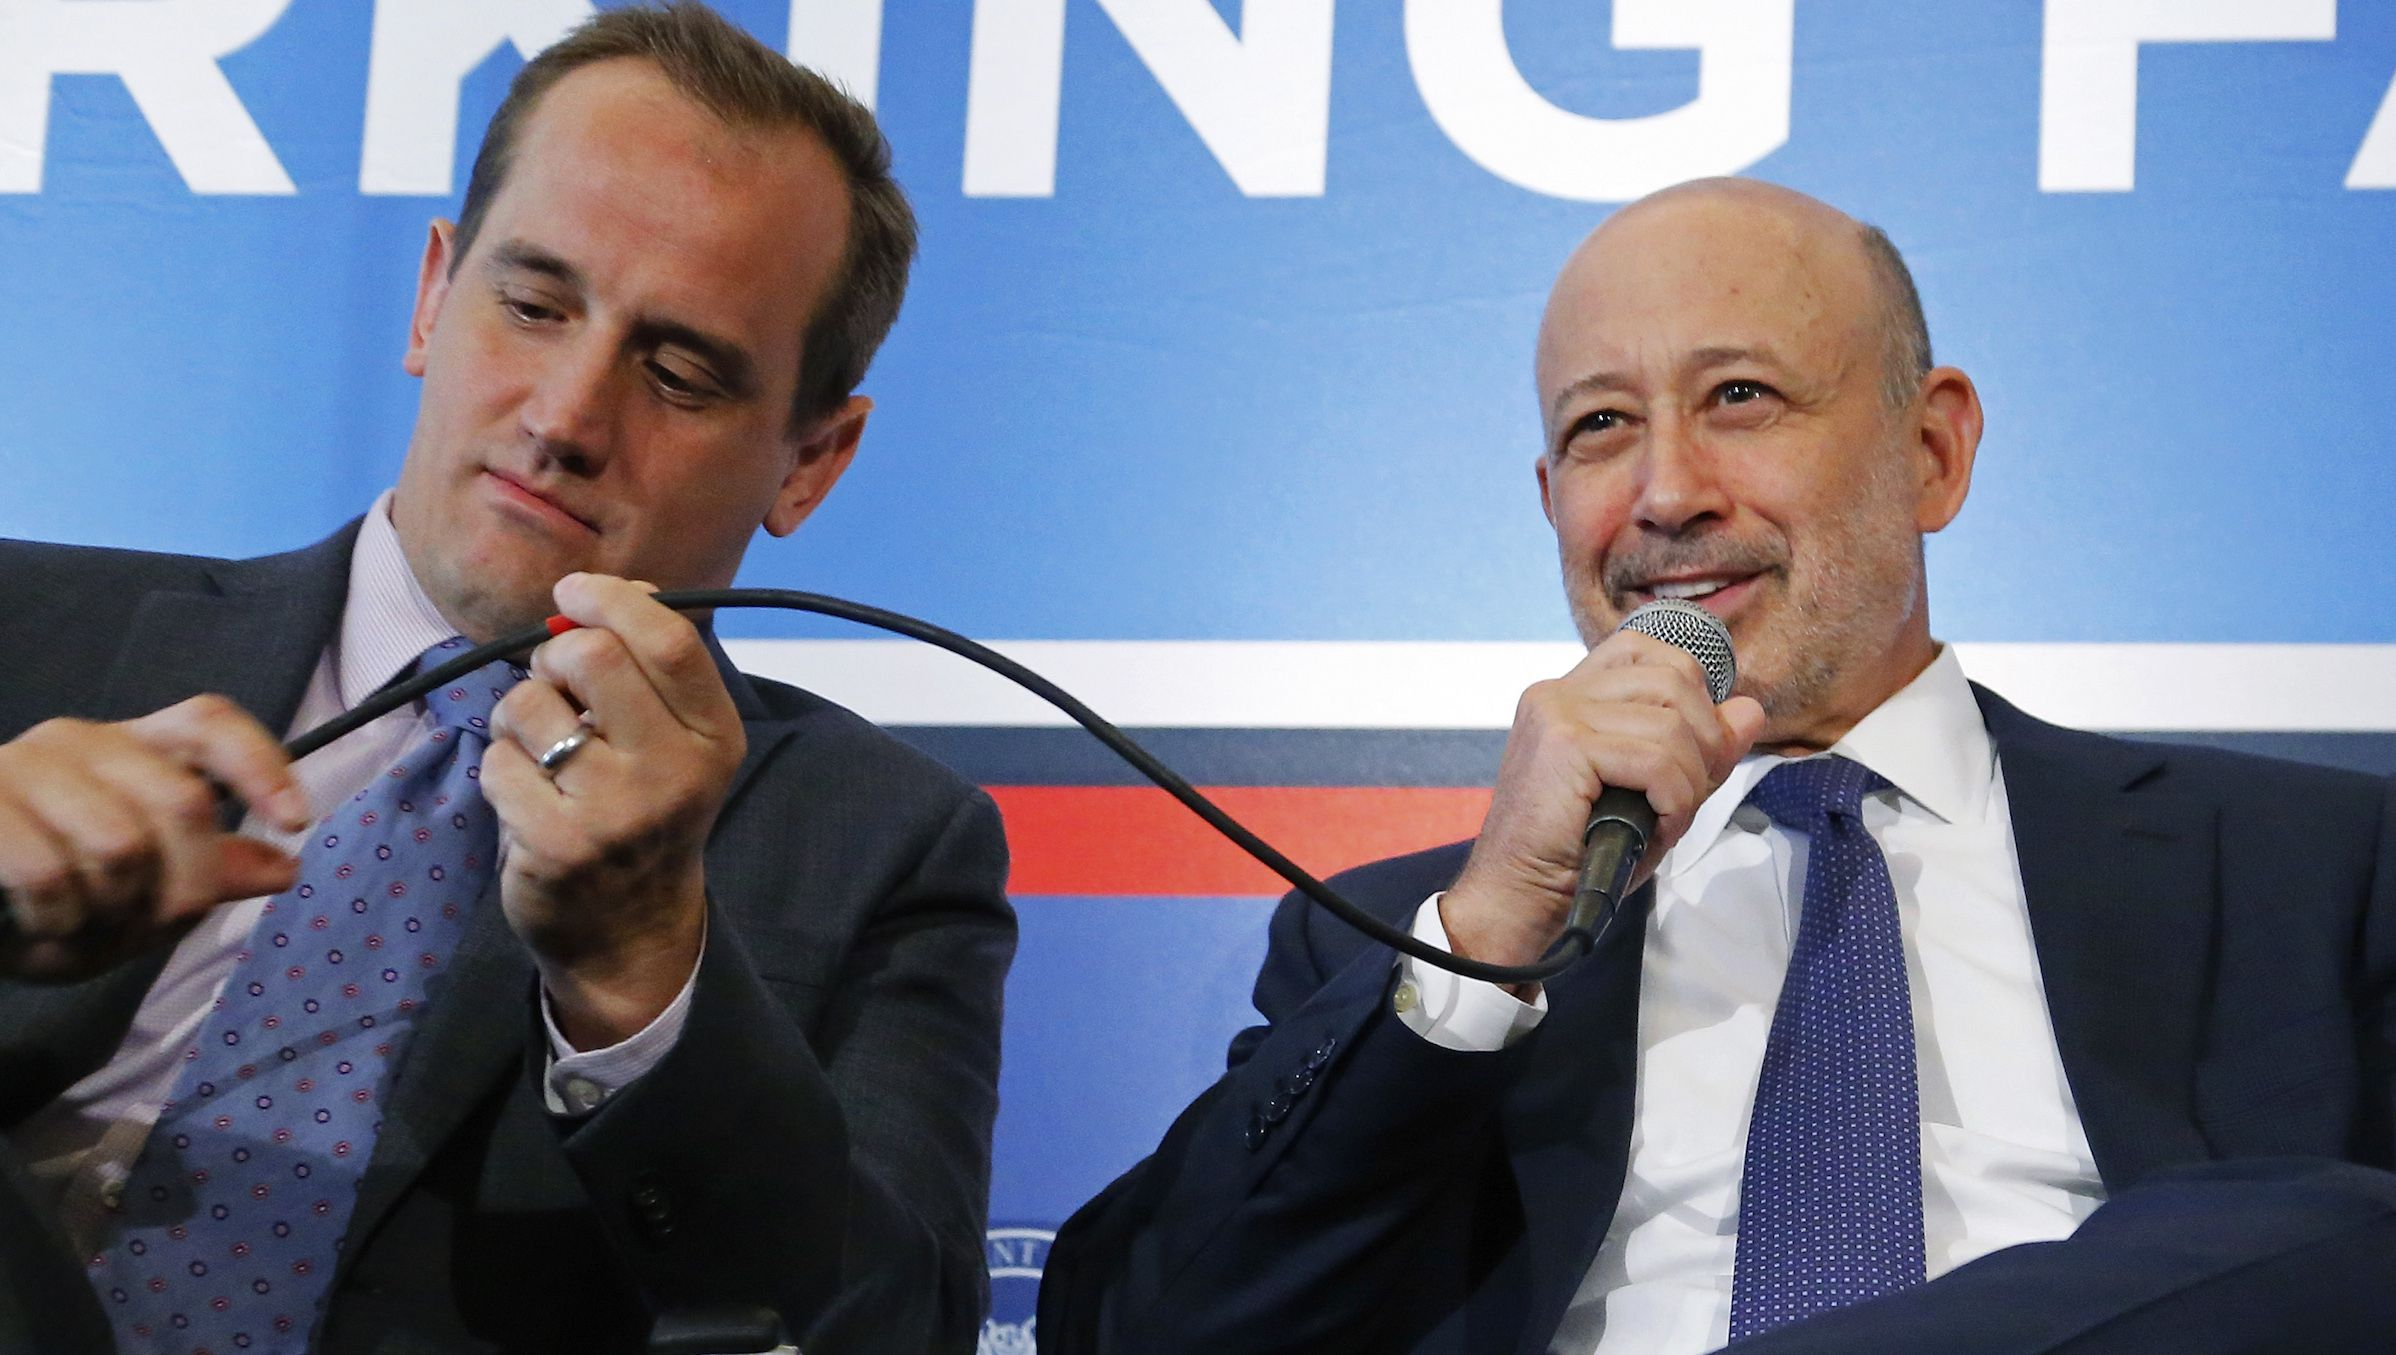 Shake Shack CEO Garutti and Goldman Sachs Group, Inc. Chairman and CEO Blankfein participate in a panel discussion during the White House Summit on Working Families in Washington